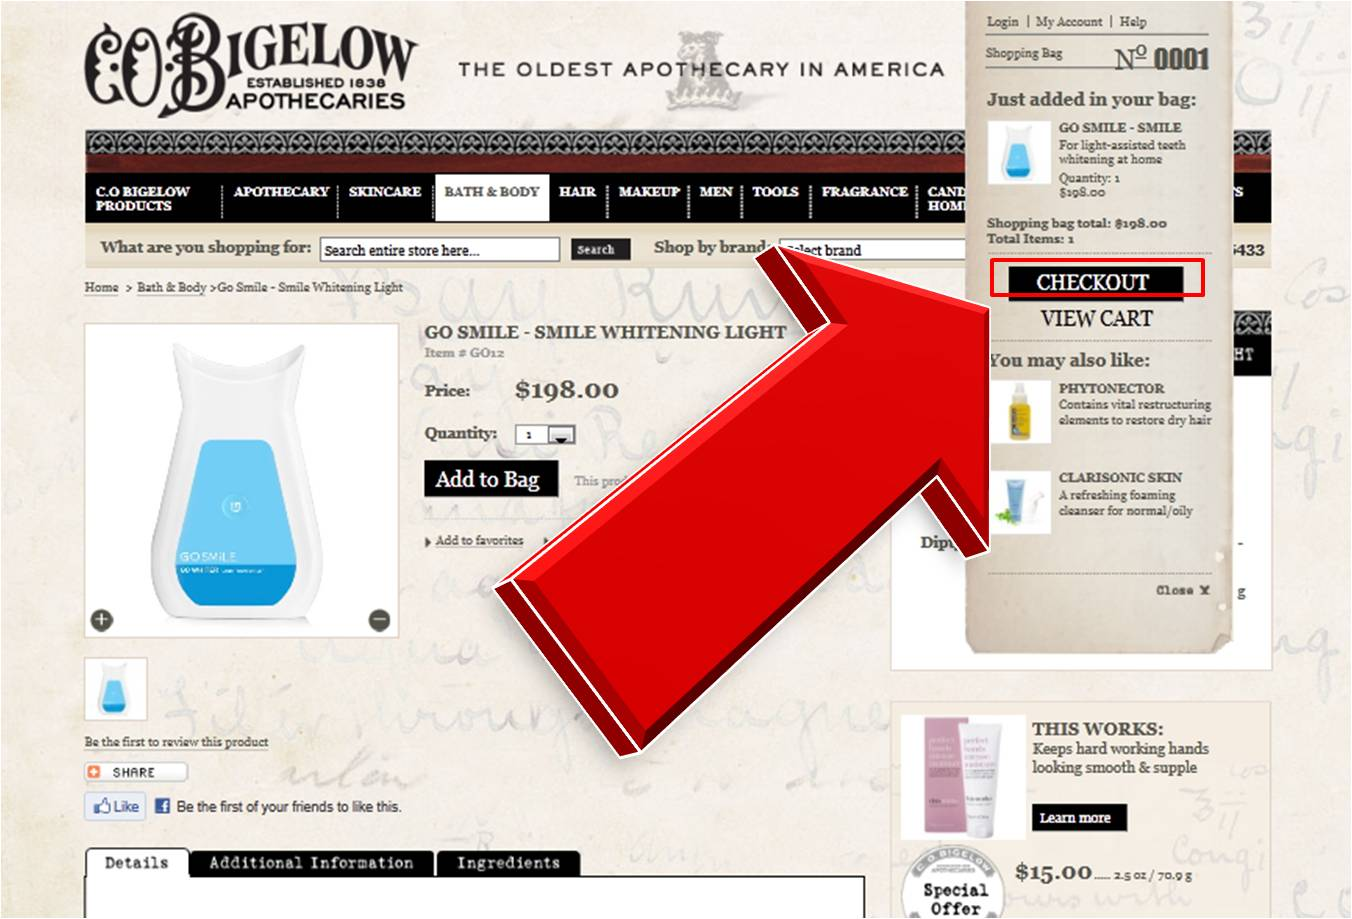 C.O. Bigelow Apothecaries offers promo codes often. On average, C.O. Bigelow Apothecaries offers 6 codes or coupons per month. Check this page often, or follow C.O. Bigelow Apothecaries (hit the follow button up top) to keep updated on their latest discount codes. Check for C.O. Bigelow Apothecaries' promo code exclusions.4/4(2).